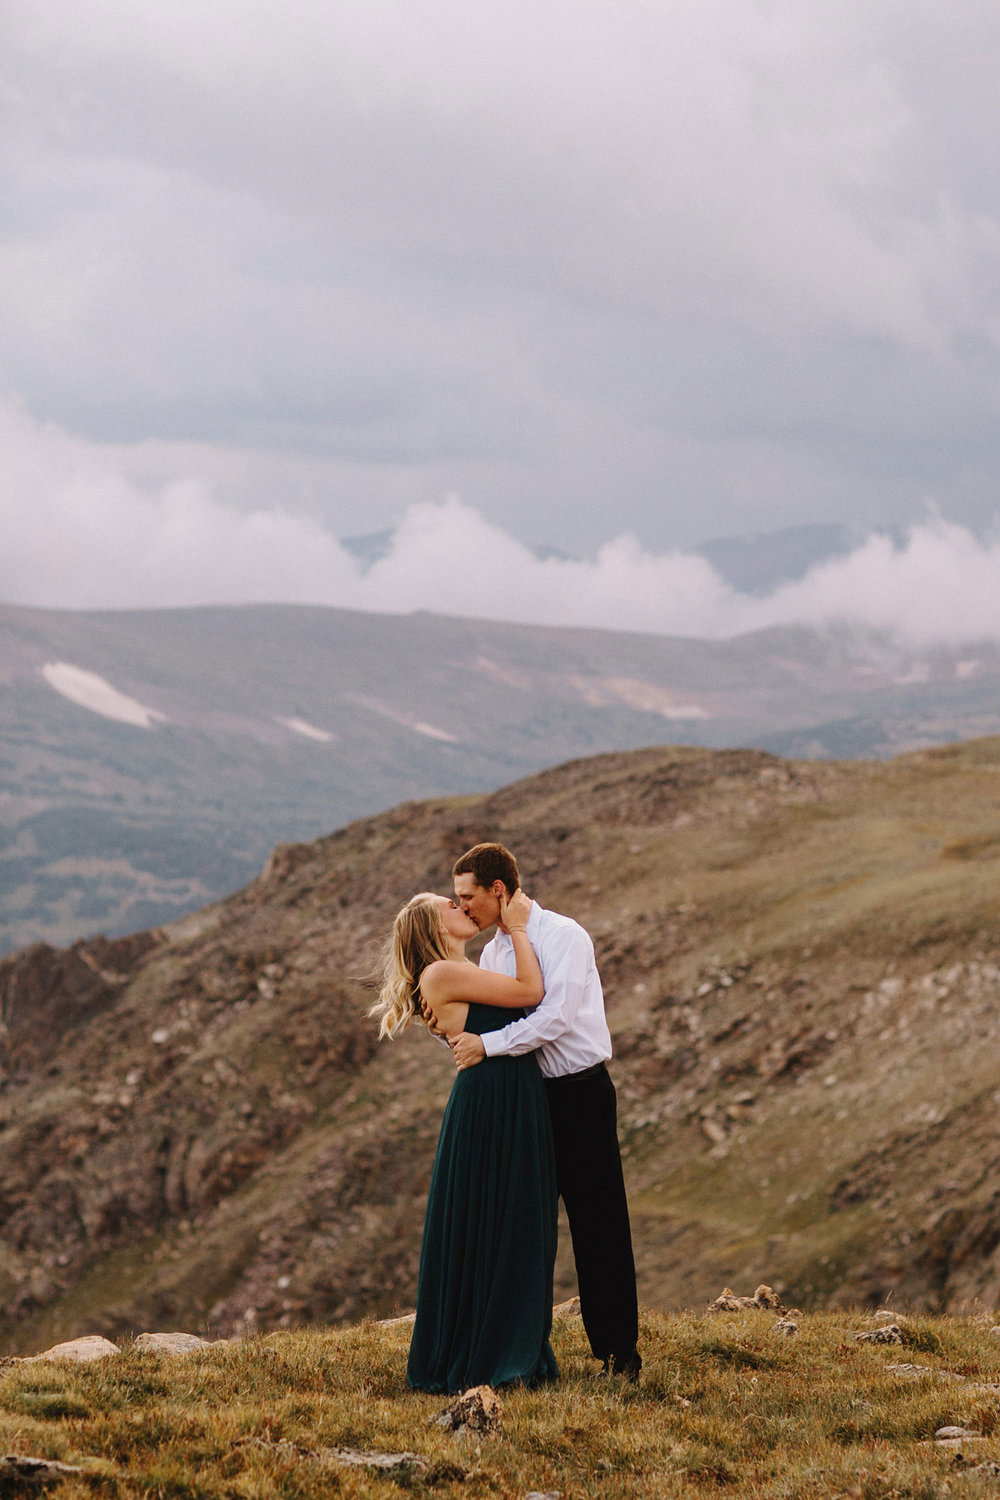 Rocky Mountain Engagement National Park Engaged Photos Wedding Elopement Portrait Mountains Trail Ridge Rd Peak Alpine Dress Lulus Rules Permit Photo Adventure Love Couples Destination Liz Osban photography Cheyenne Wyoming11.jpg